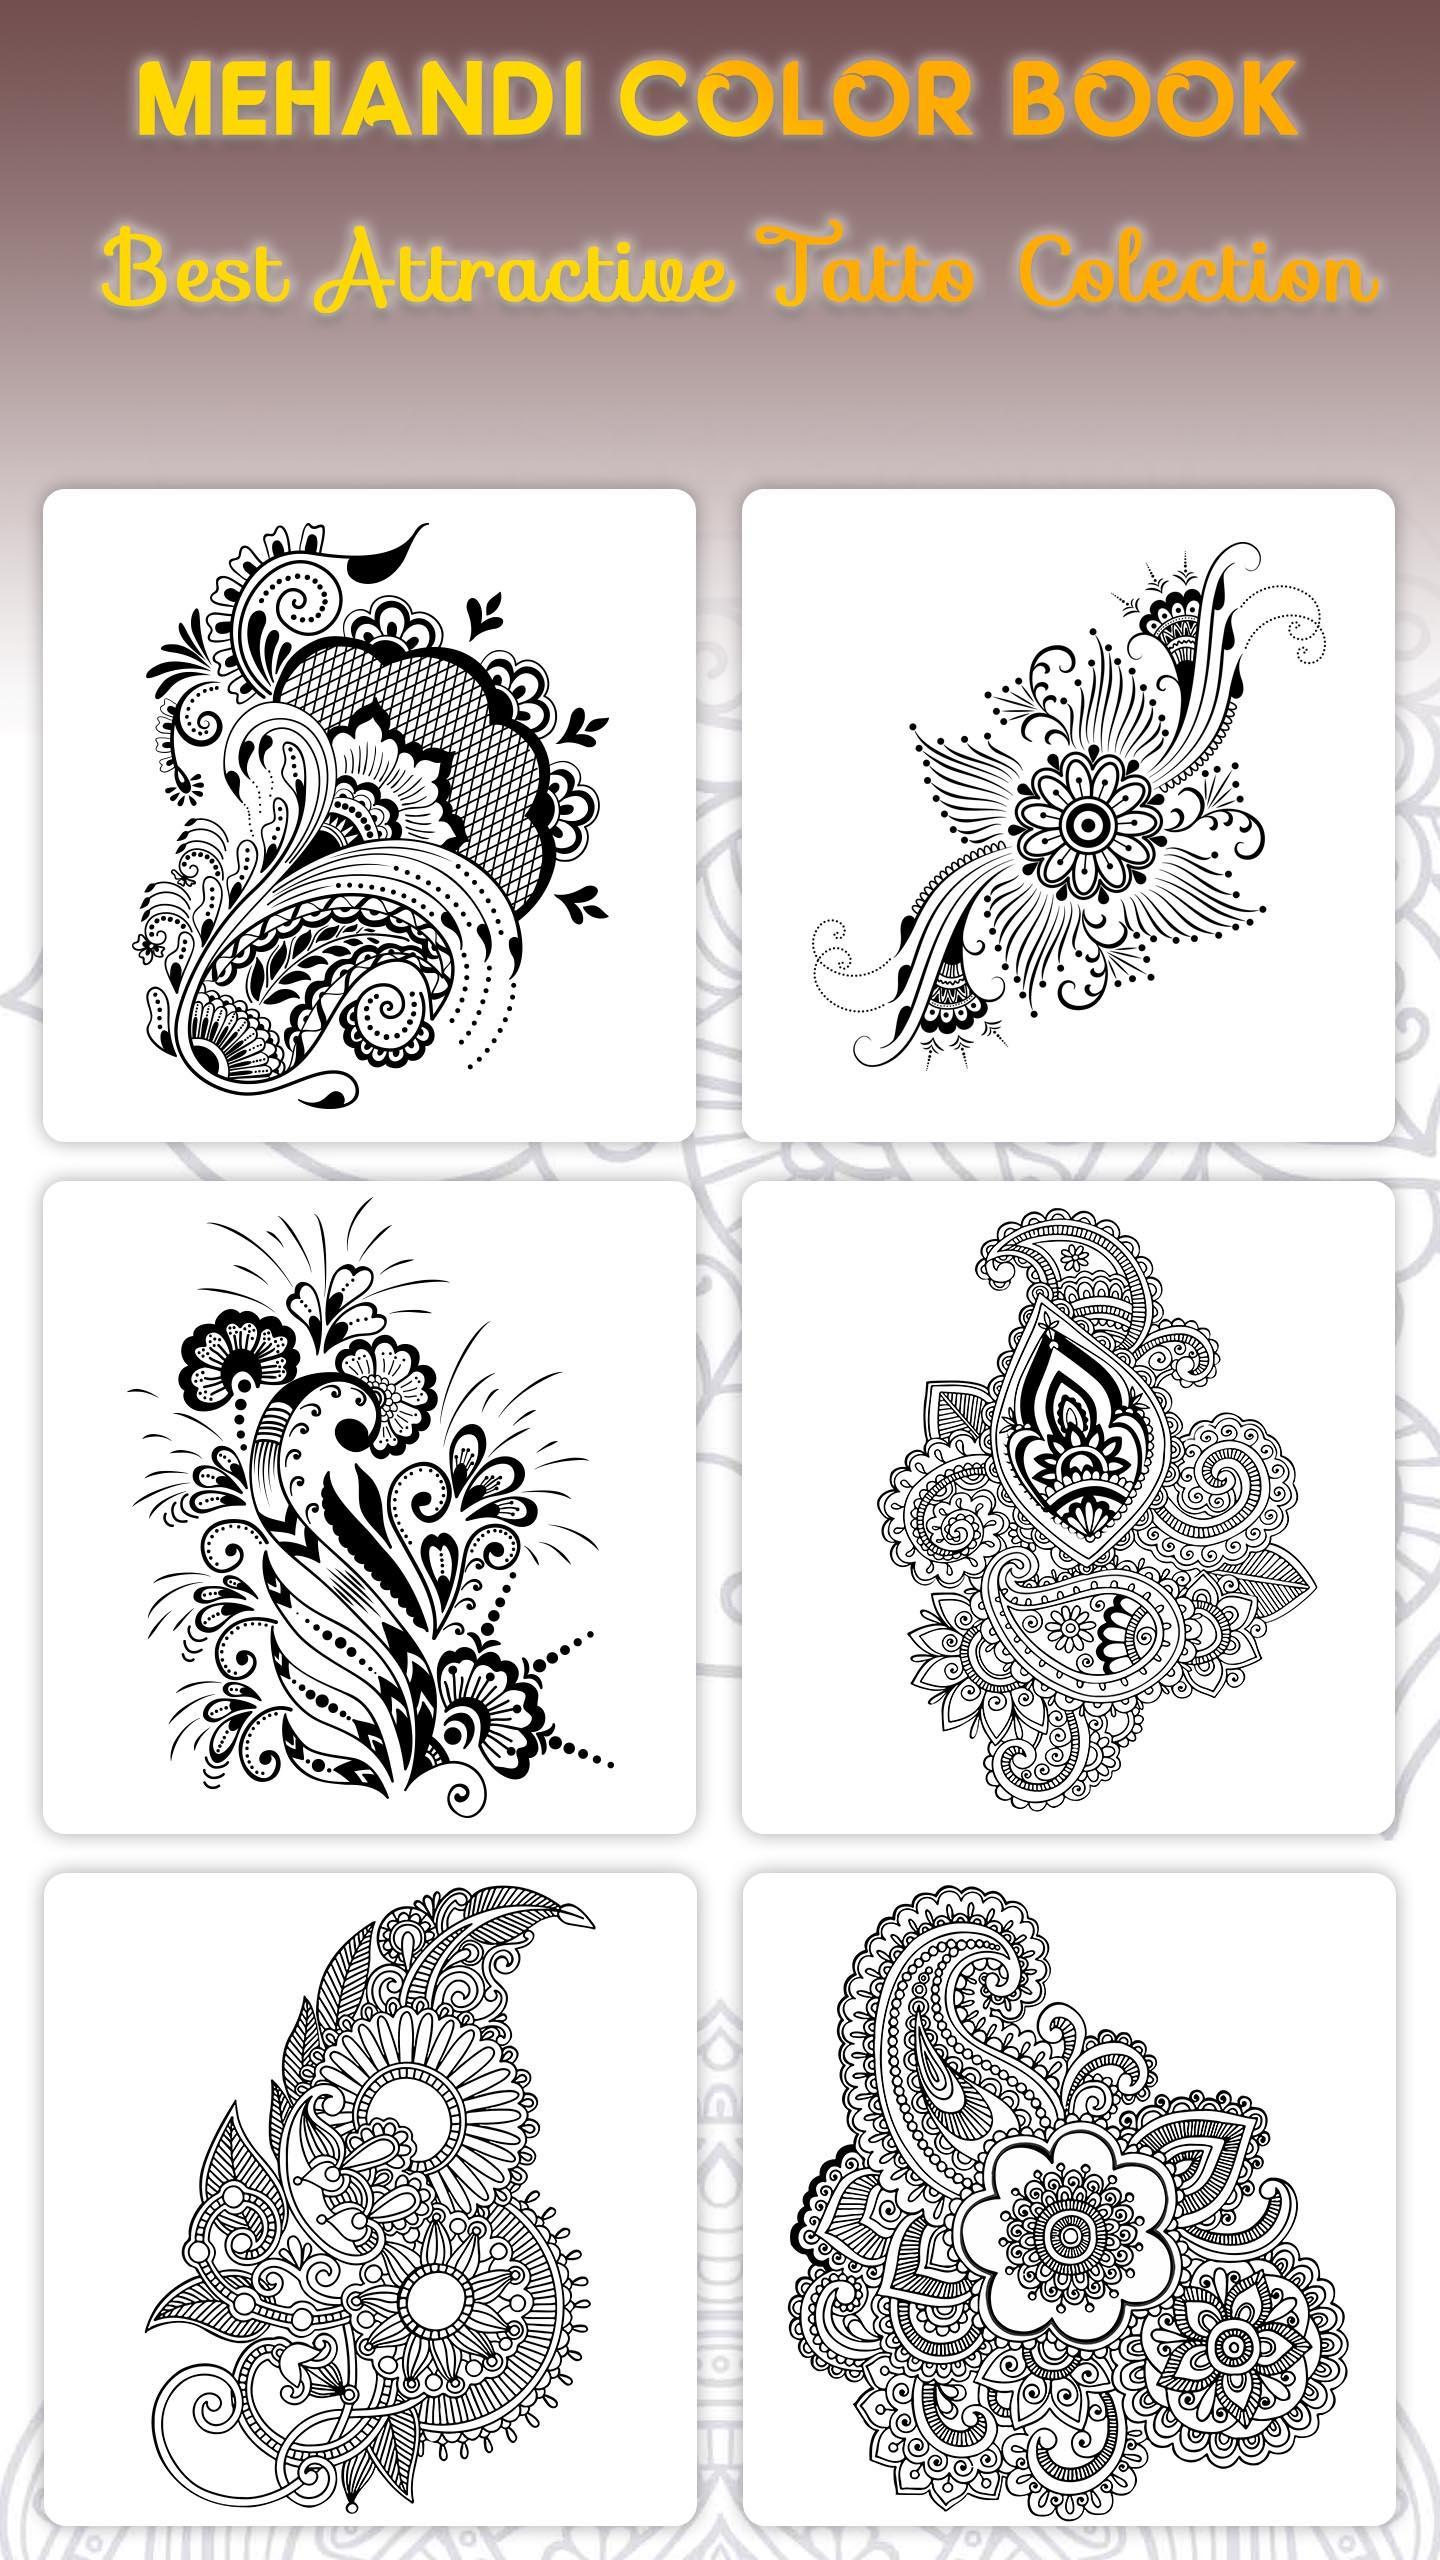 Latest Color Mehandi Designs Colouring Book For Android